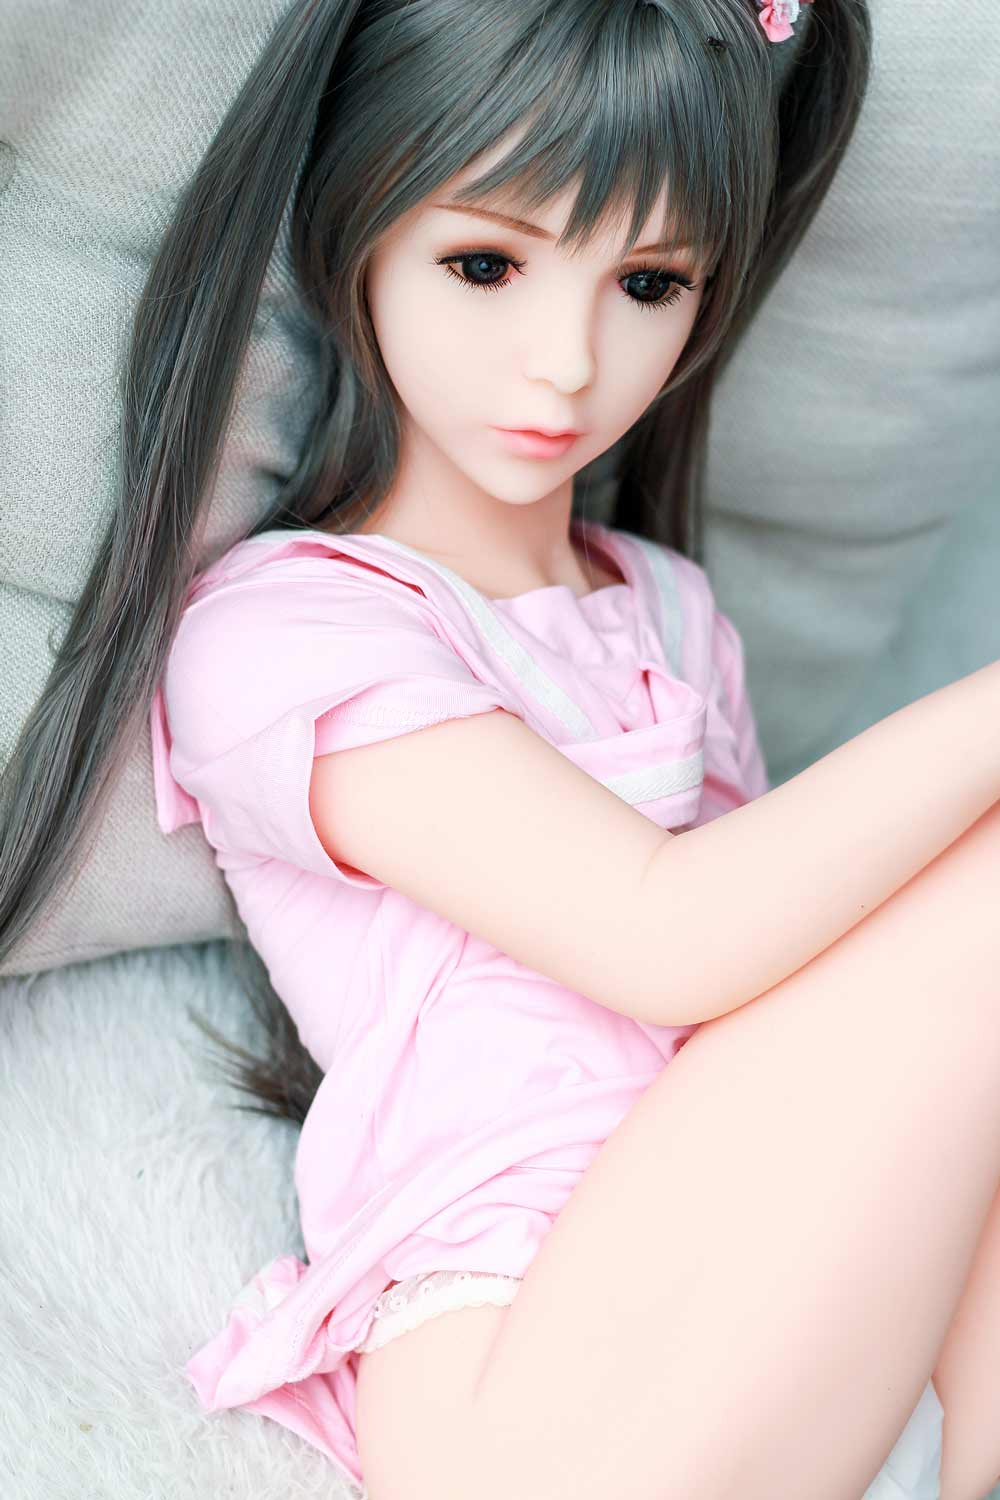 Mini sex doll with hands on thighs